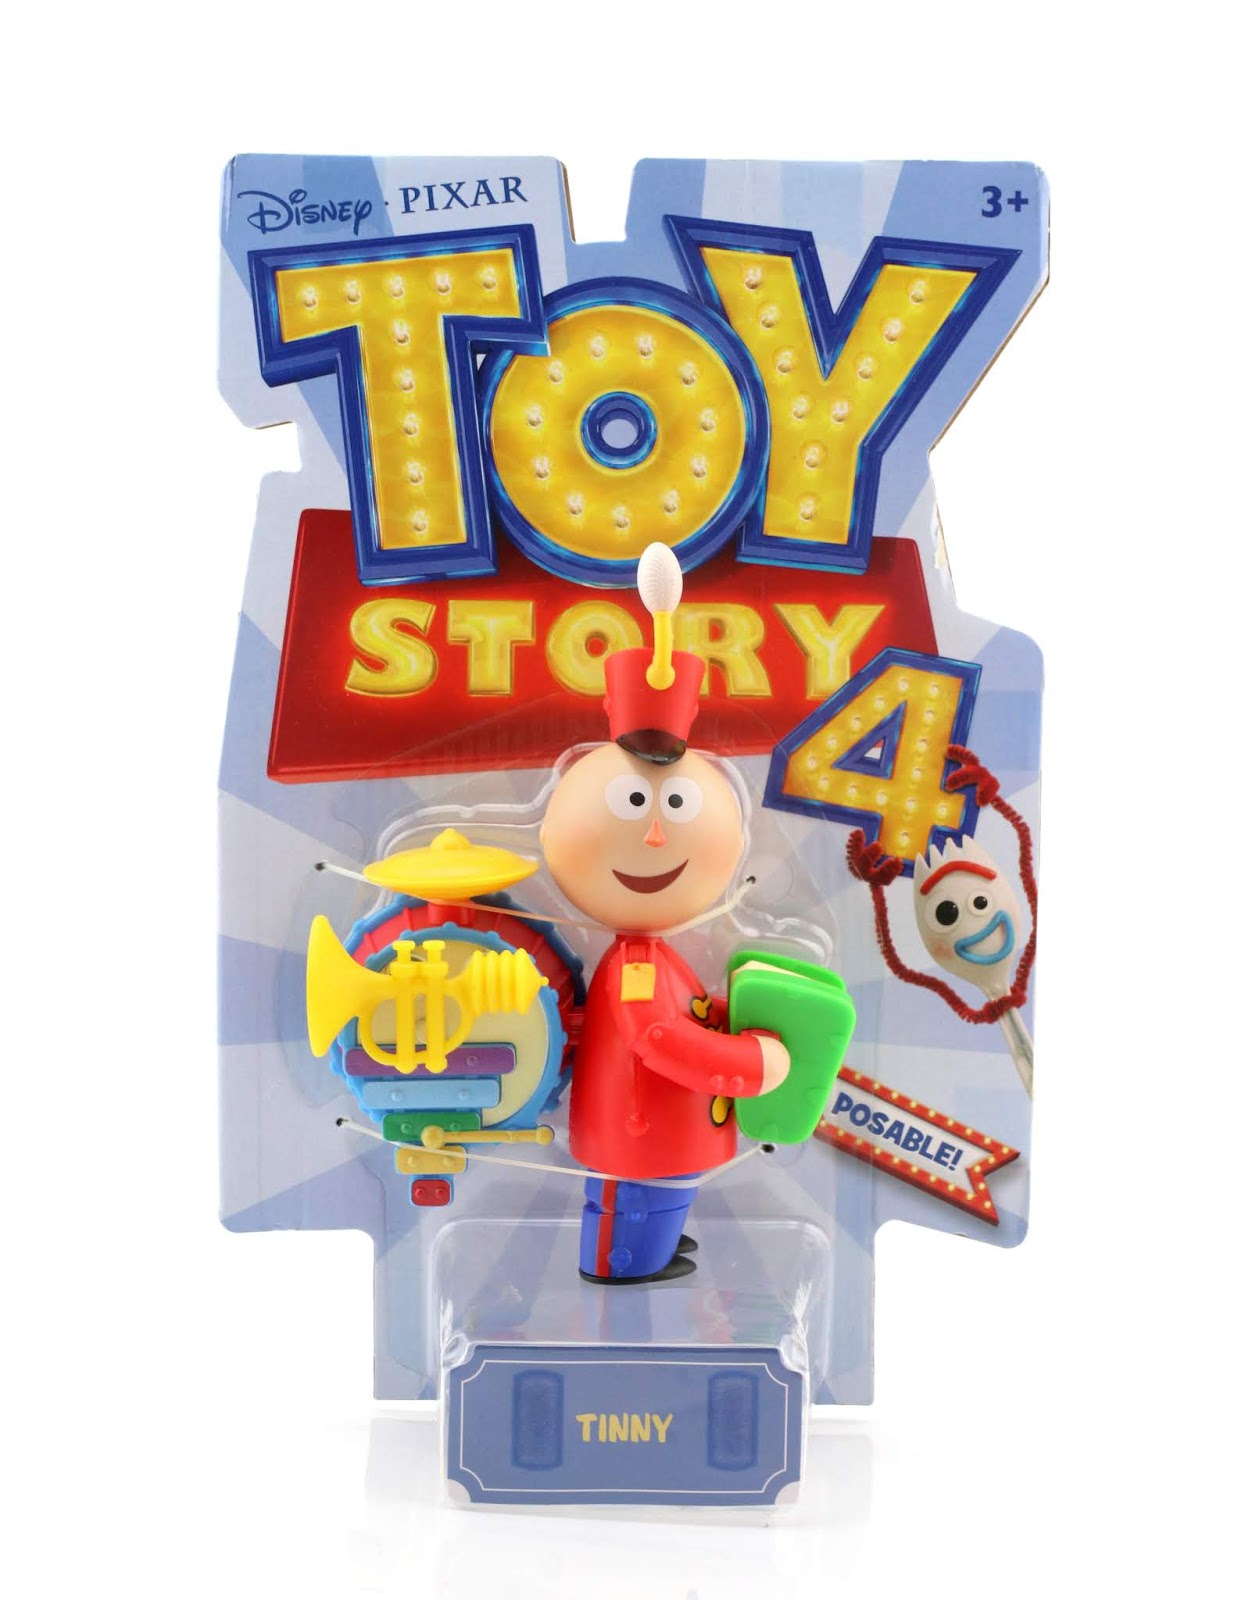 toy story 4 tinny figure